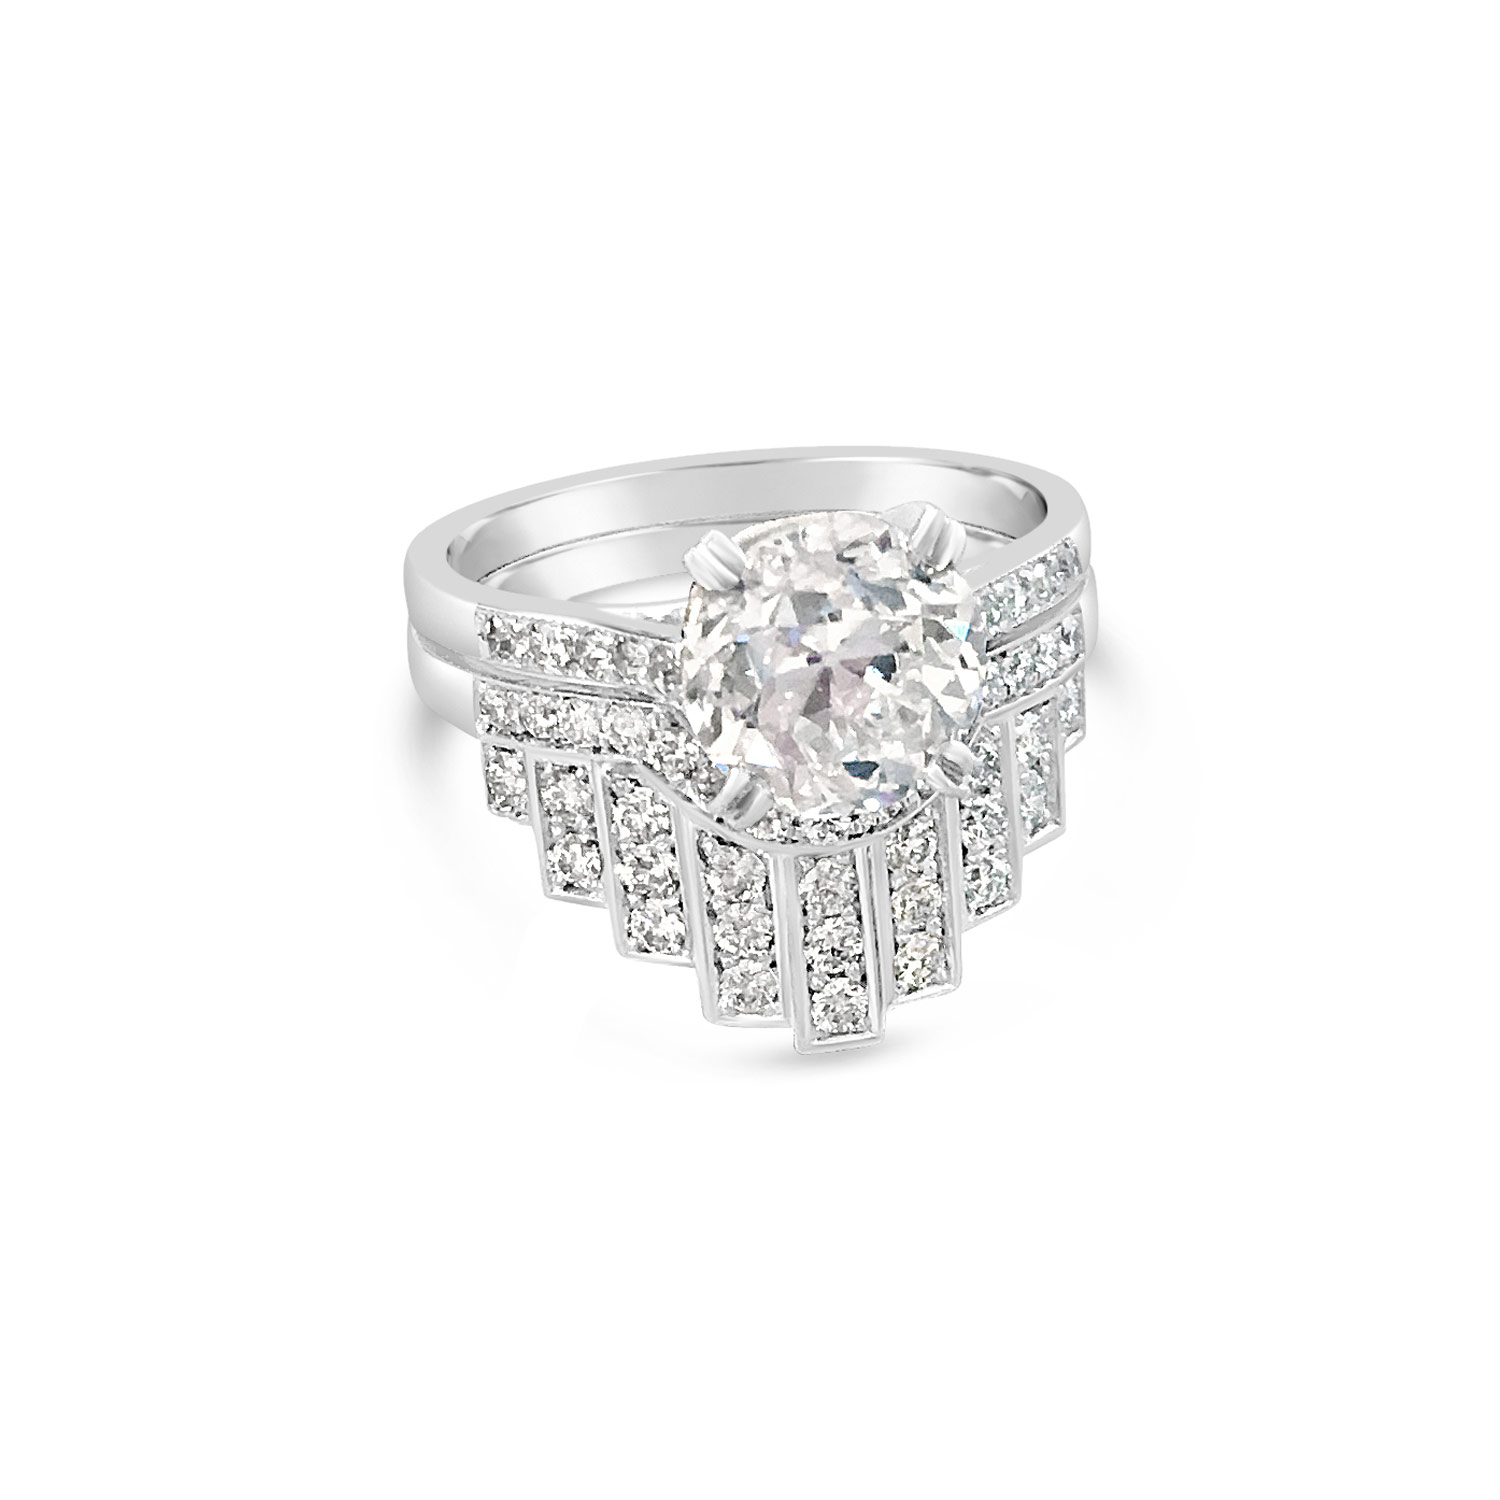 Bespoke fitted brilliant-cut diamond and platinum wedding ring front